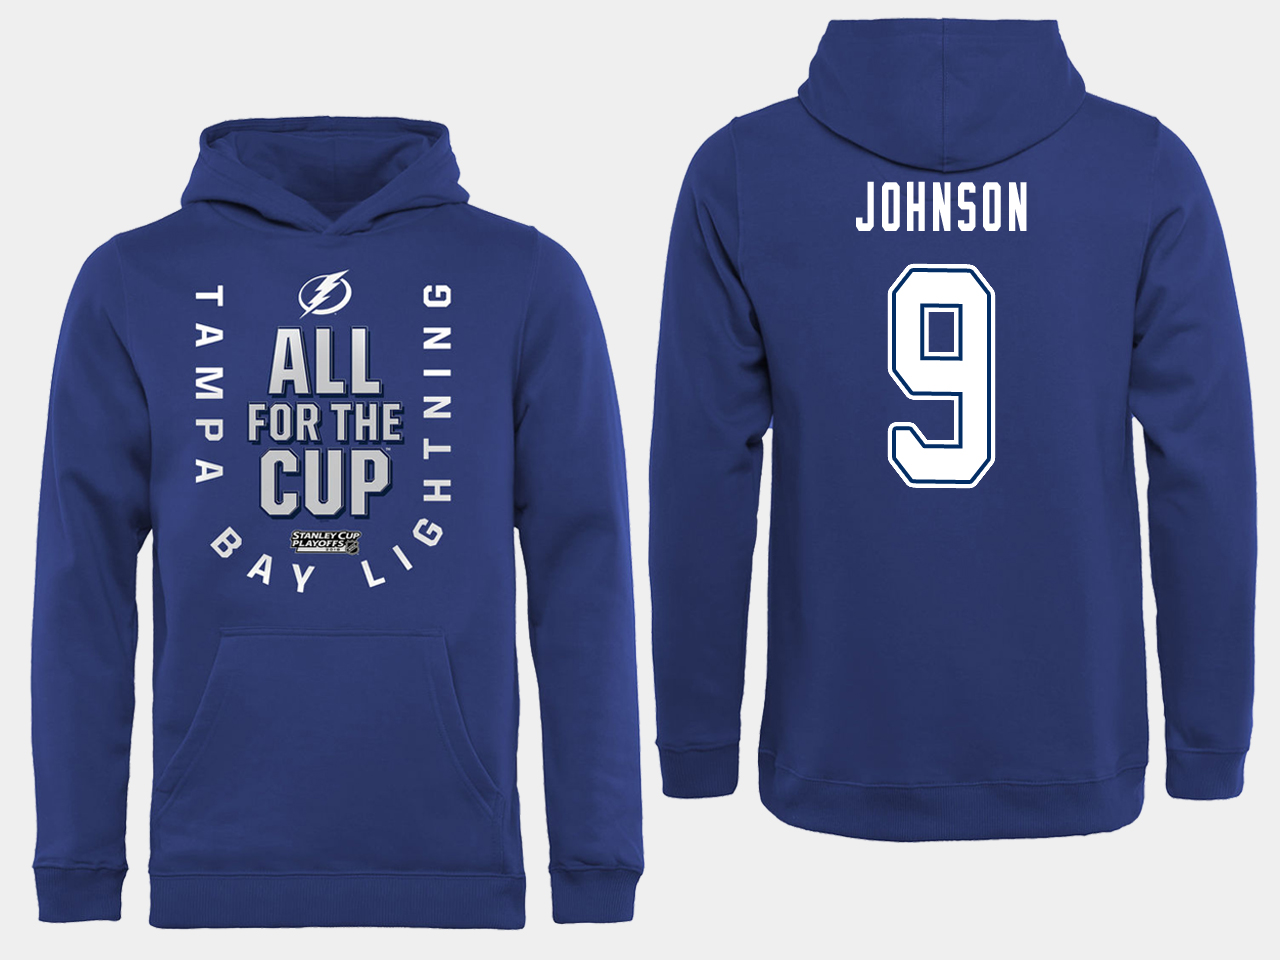 NHL Men adidas Tampa Bay Lightning 9 Johnson blue All for the Cup Hoodie